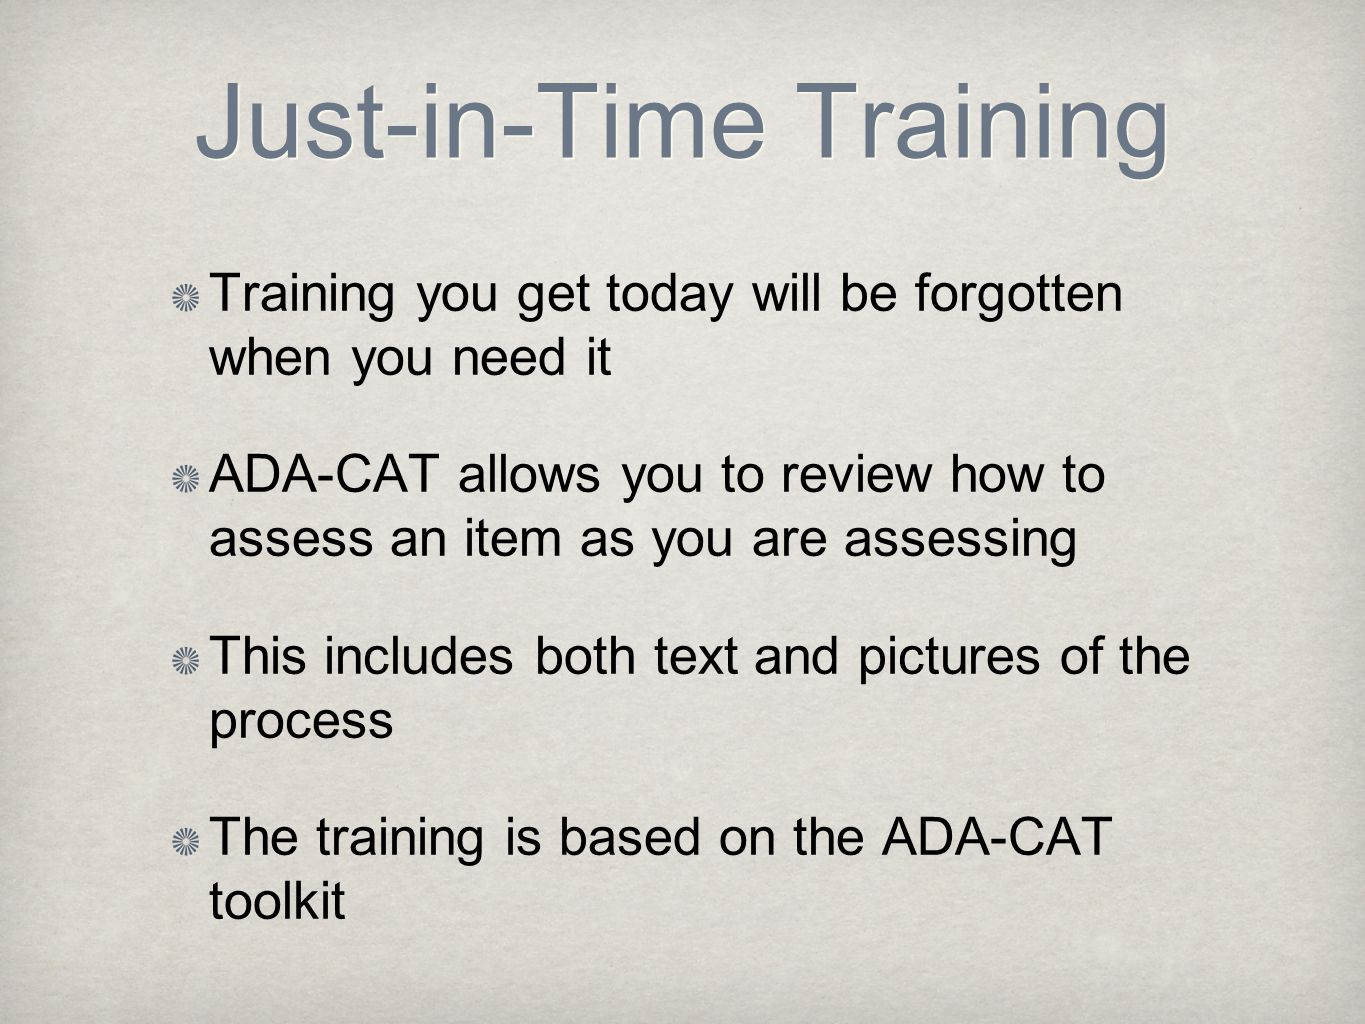 Just-in-Time Training Training you get today will be forgotten when you need it ADA-CAT allows you to review how to assess an item as you are assessing This includes both text and pictures of the process The training is based on the ADA-CAT toolkit